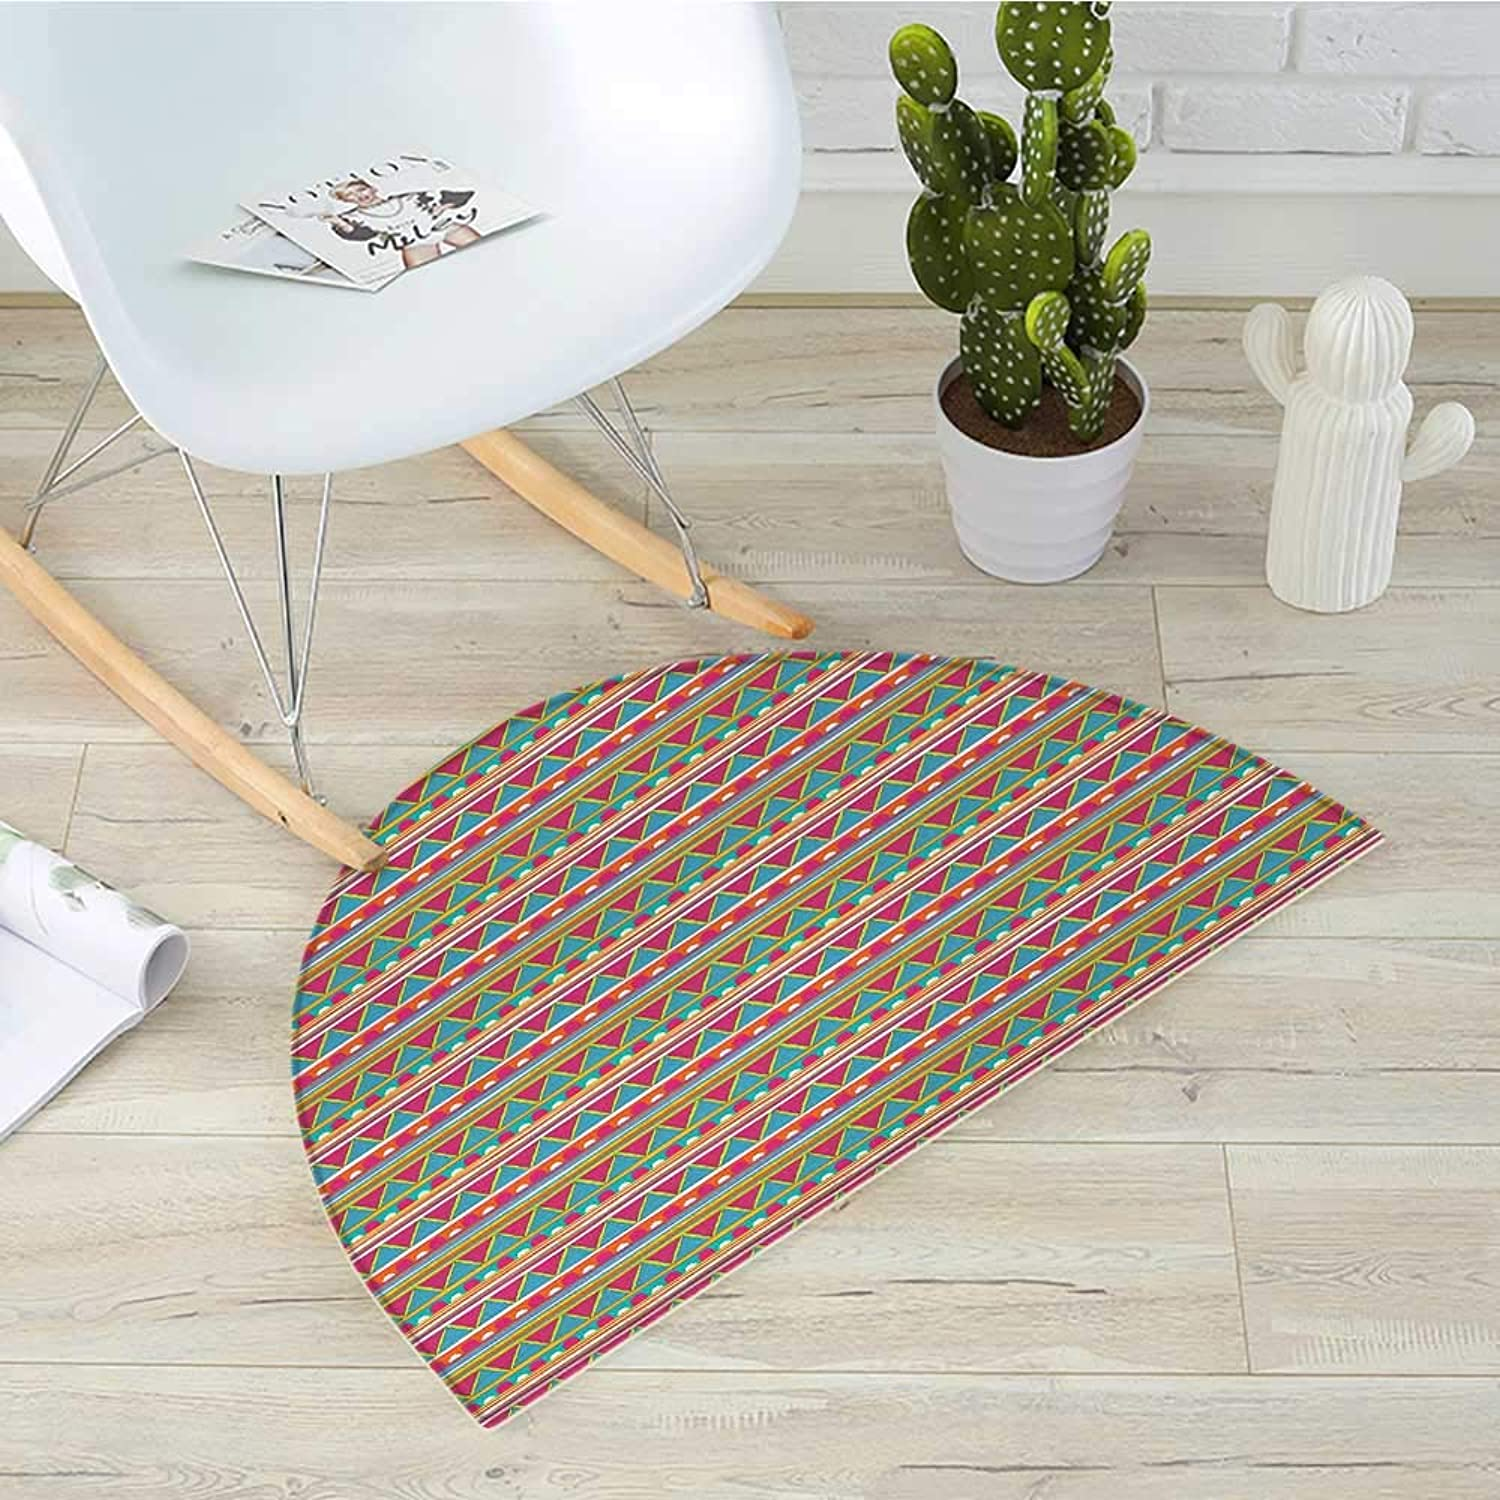 Abstract Half Round Door mats Tribal colorful Vintage Doodle Shapes with Ethnic Stripes Triangles Arrangement Bathroom Mat H 39.3  xD 59  Multicolor